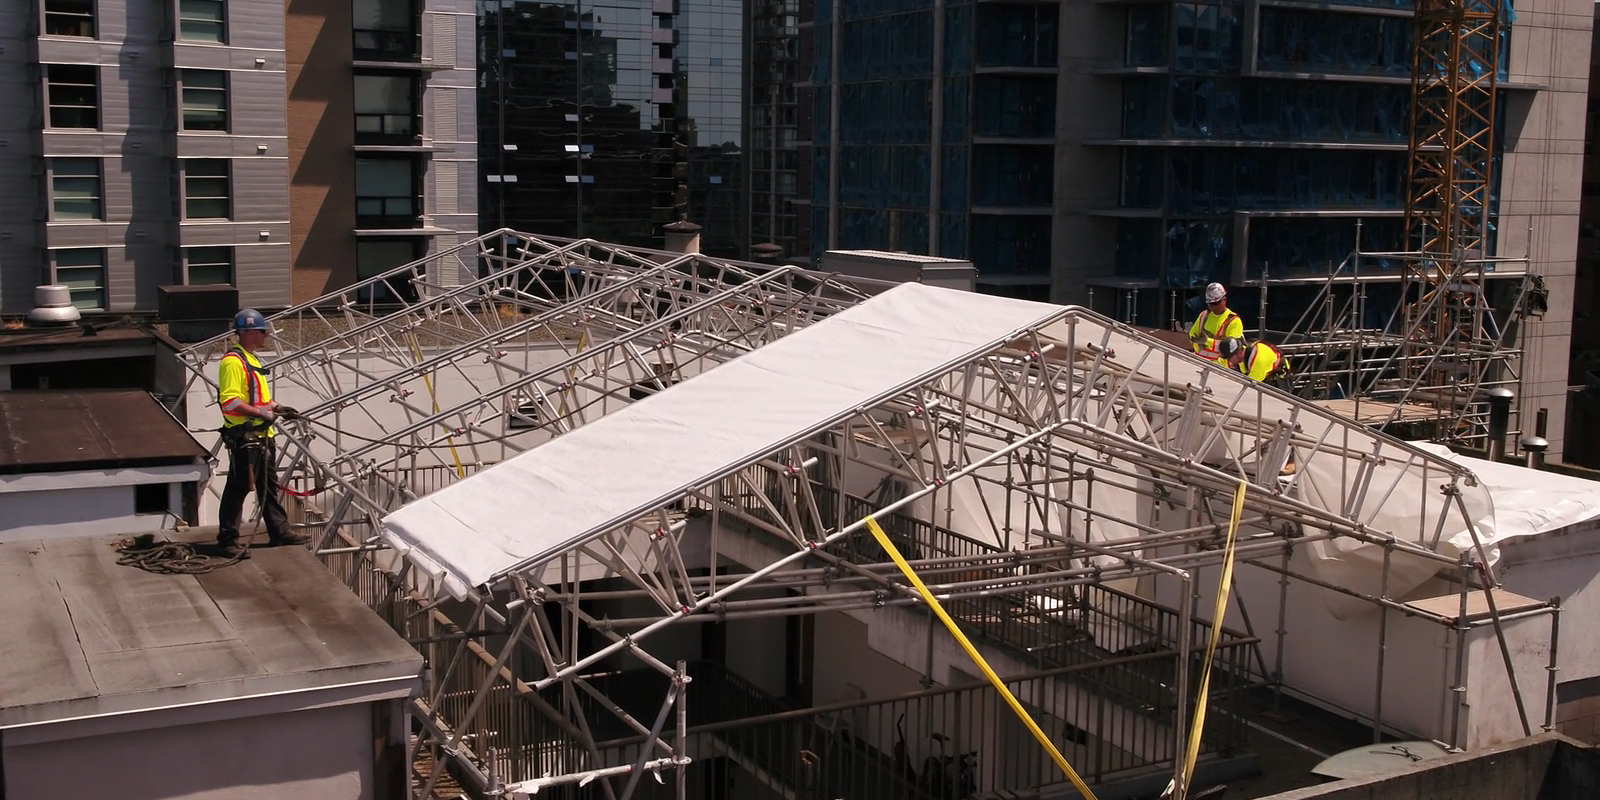 Scaffolding solutions that are innovative, safe and cost effective for our customers